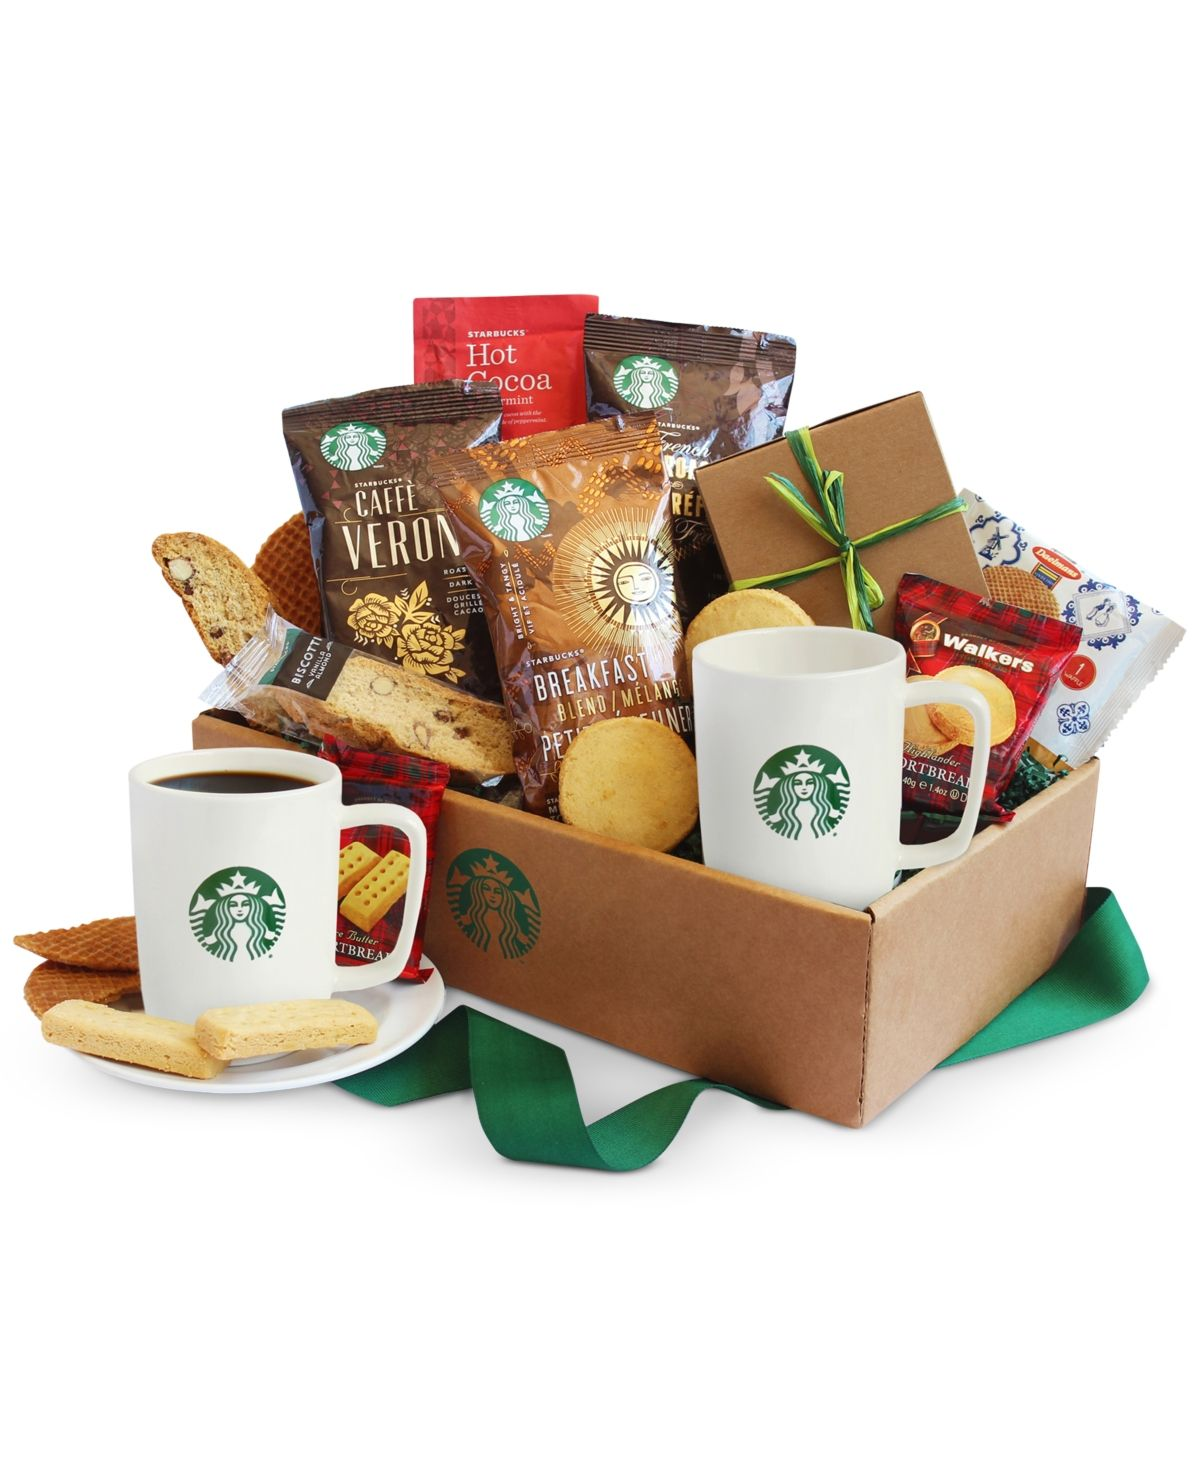 California Delicious Starbucks Coffee & Cocoa Gift Box